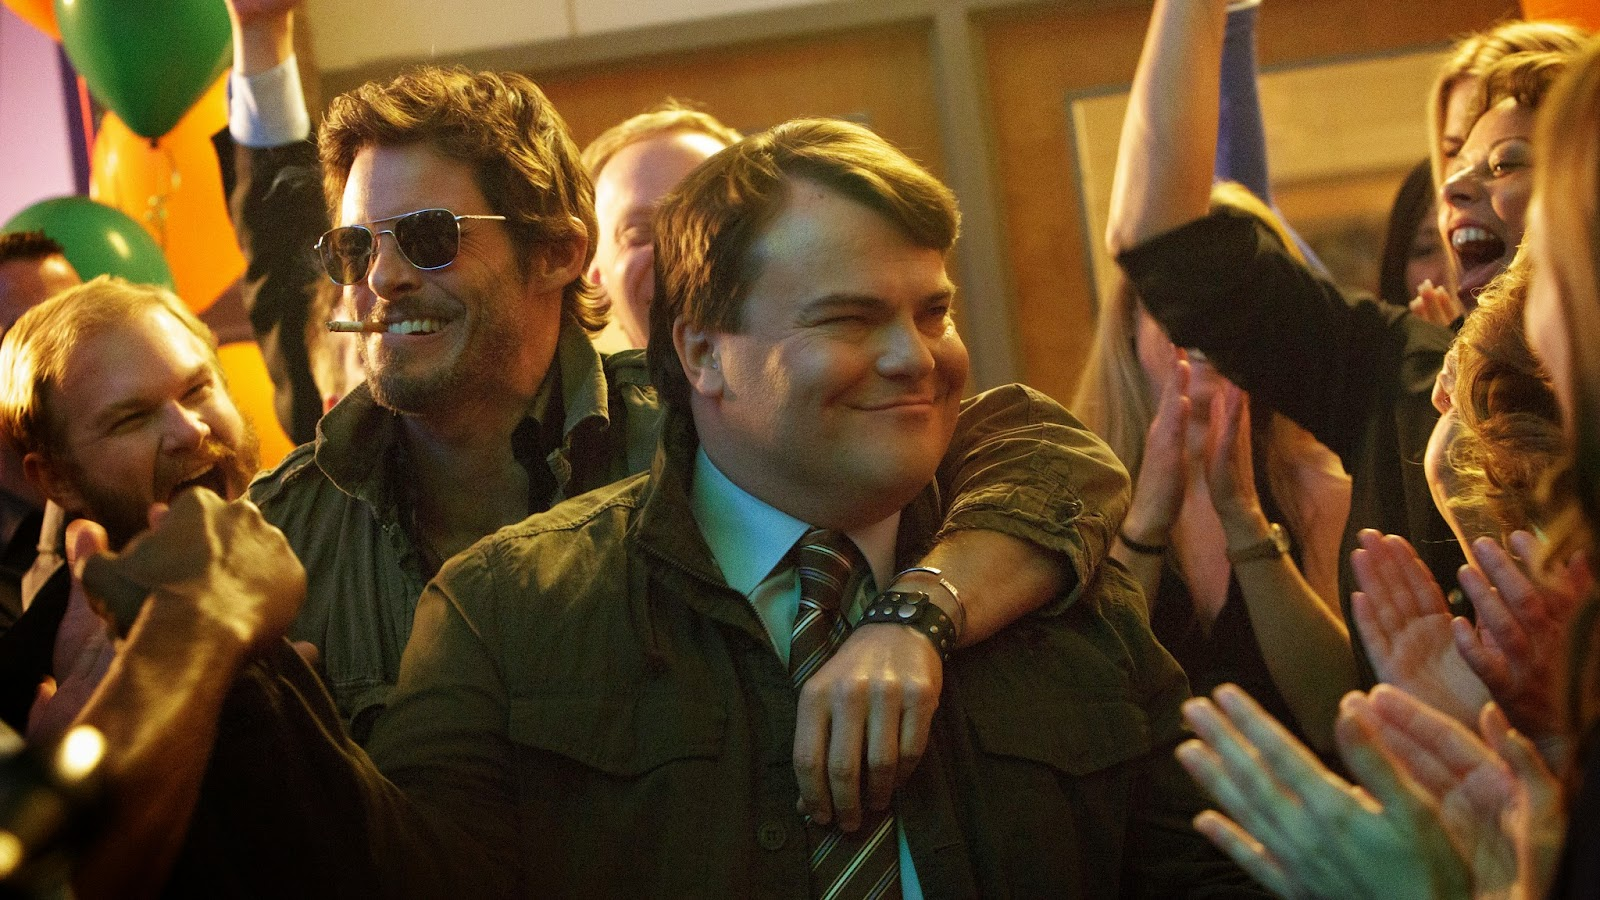 MOVIES: Sundance Announces First Wave of 2015 Festival Films